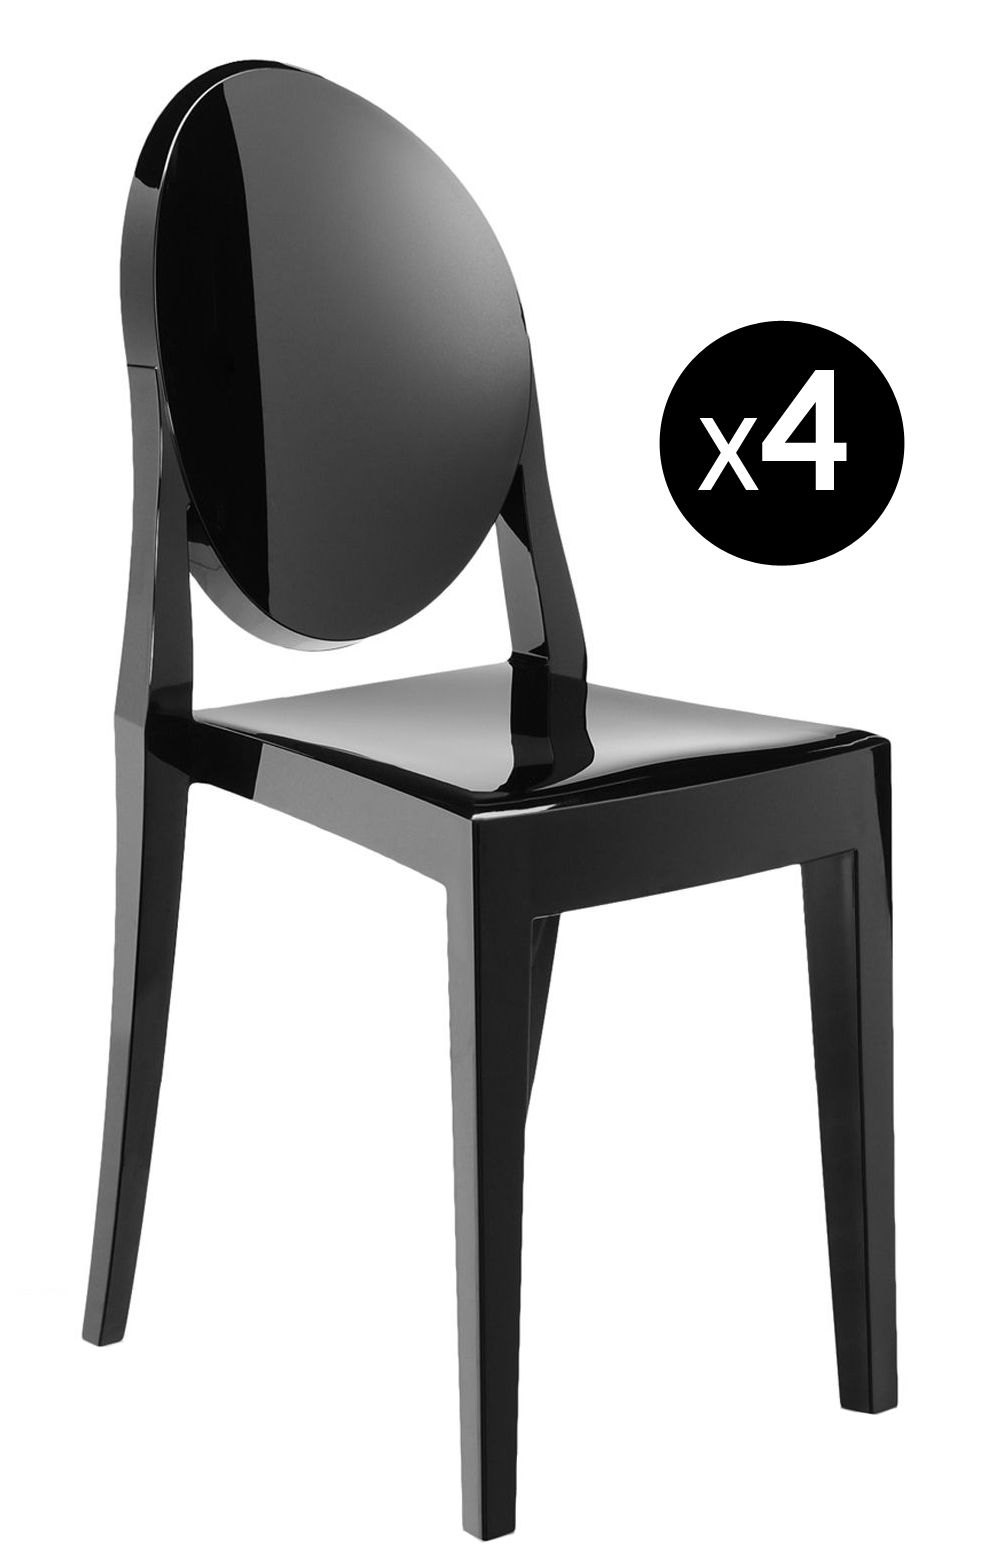 chaise empilable victoria ghost lot de 4 noir opaque kartell. Black Bedroom Furniture Sets. Home Design Ideas